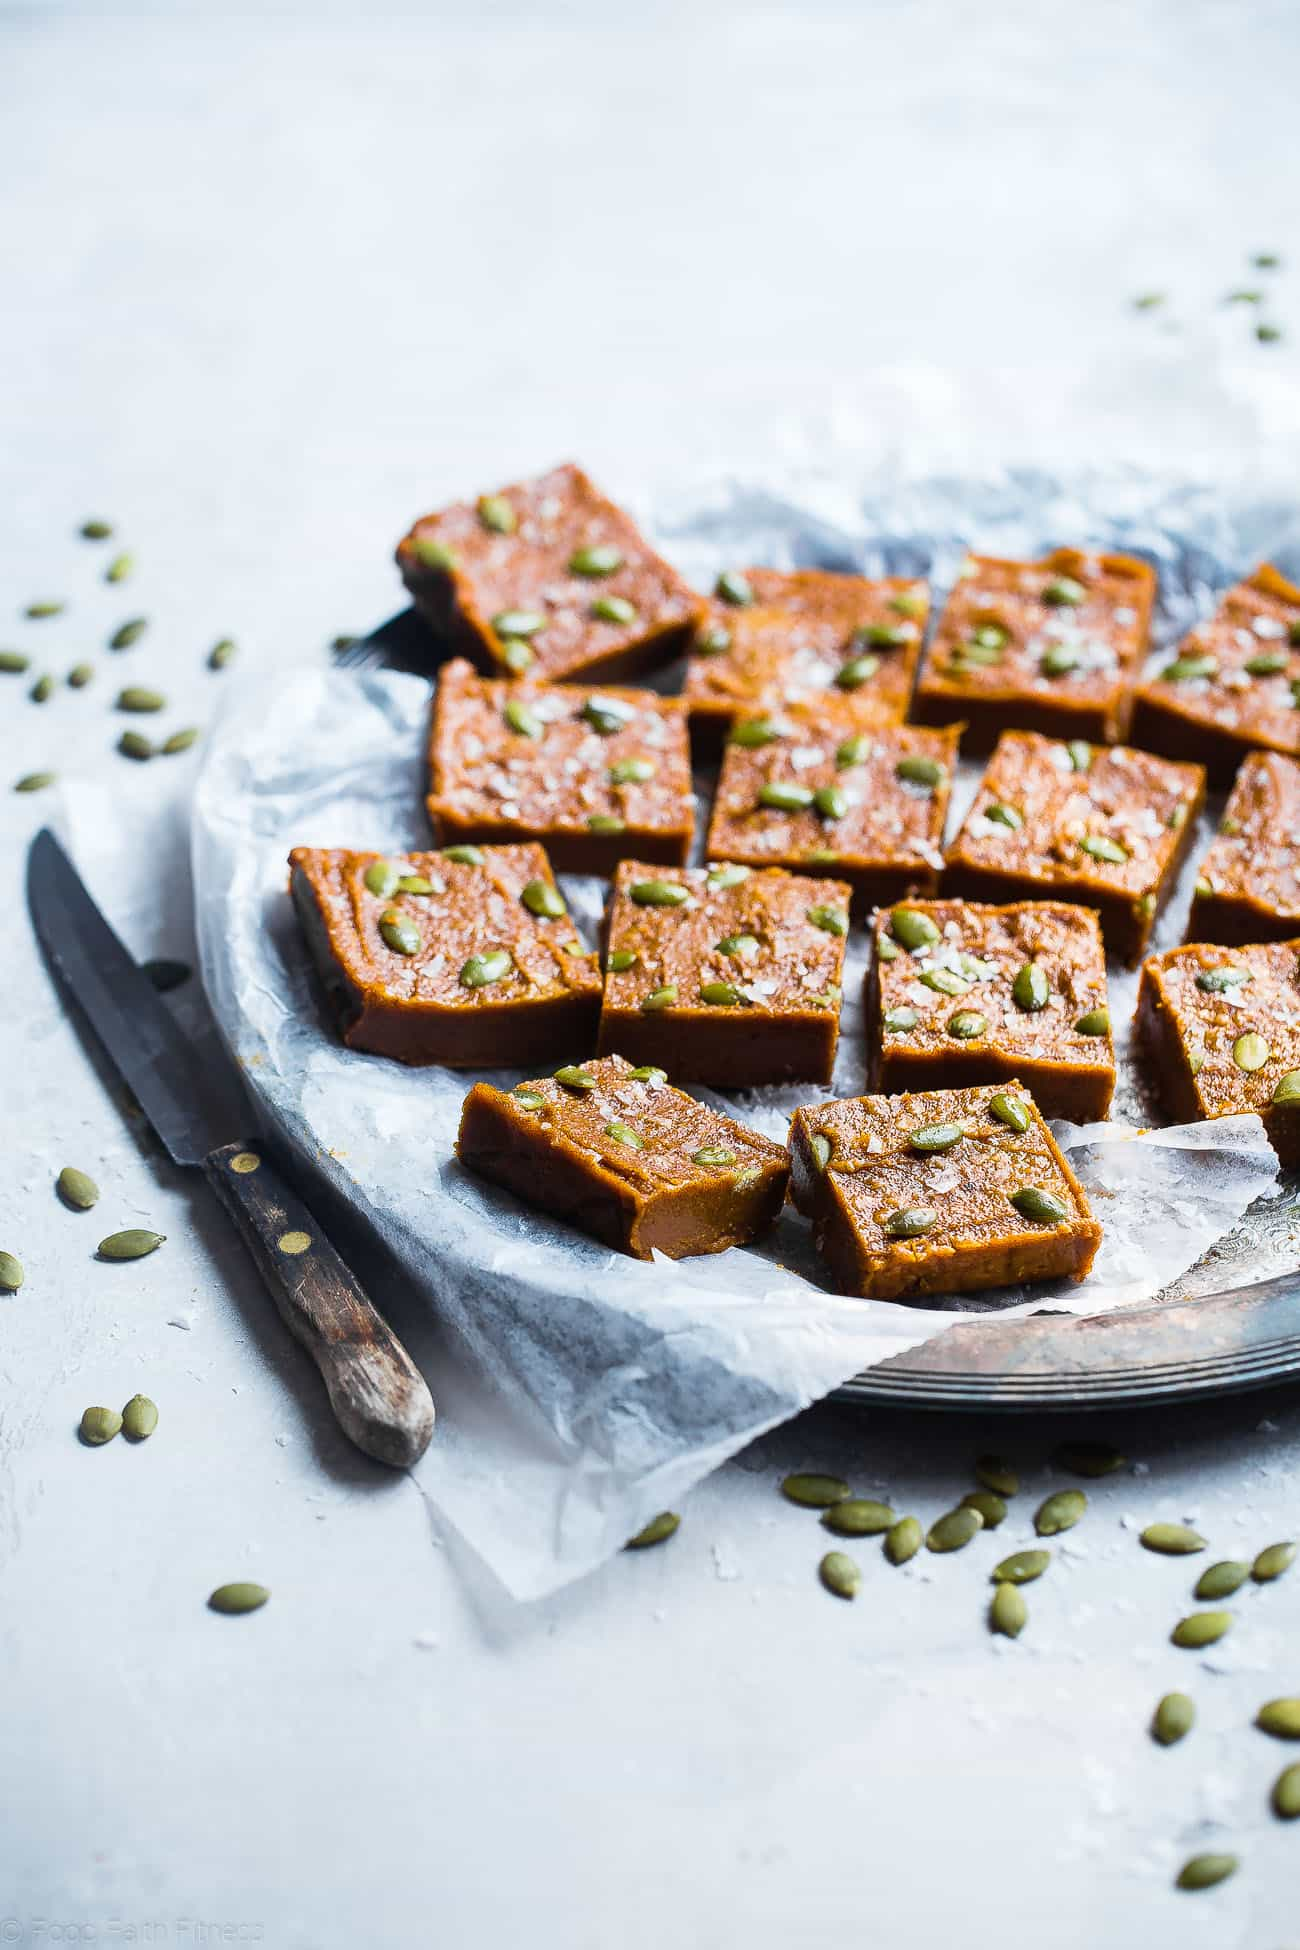 Sugar Free Vegan Pumpkin Freezer Fudge - This paleo pumpkin fudge requires only a few minutes to make and is naturally sweetened with dates! It's gluten, grain and dairy free and SO creamy! | Foodfaithfitness.com | @FoodFaithFit